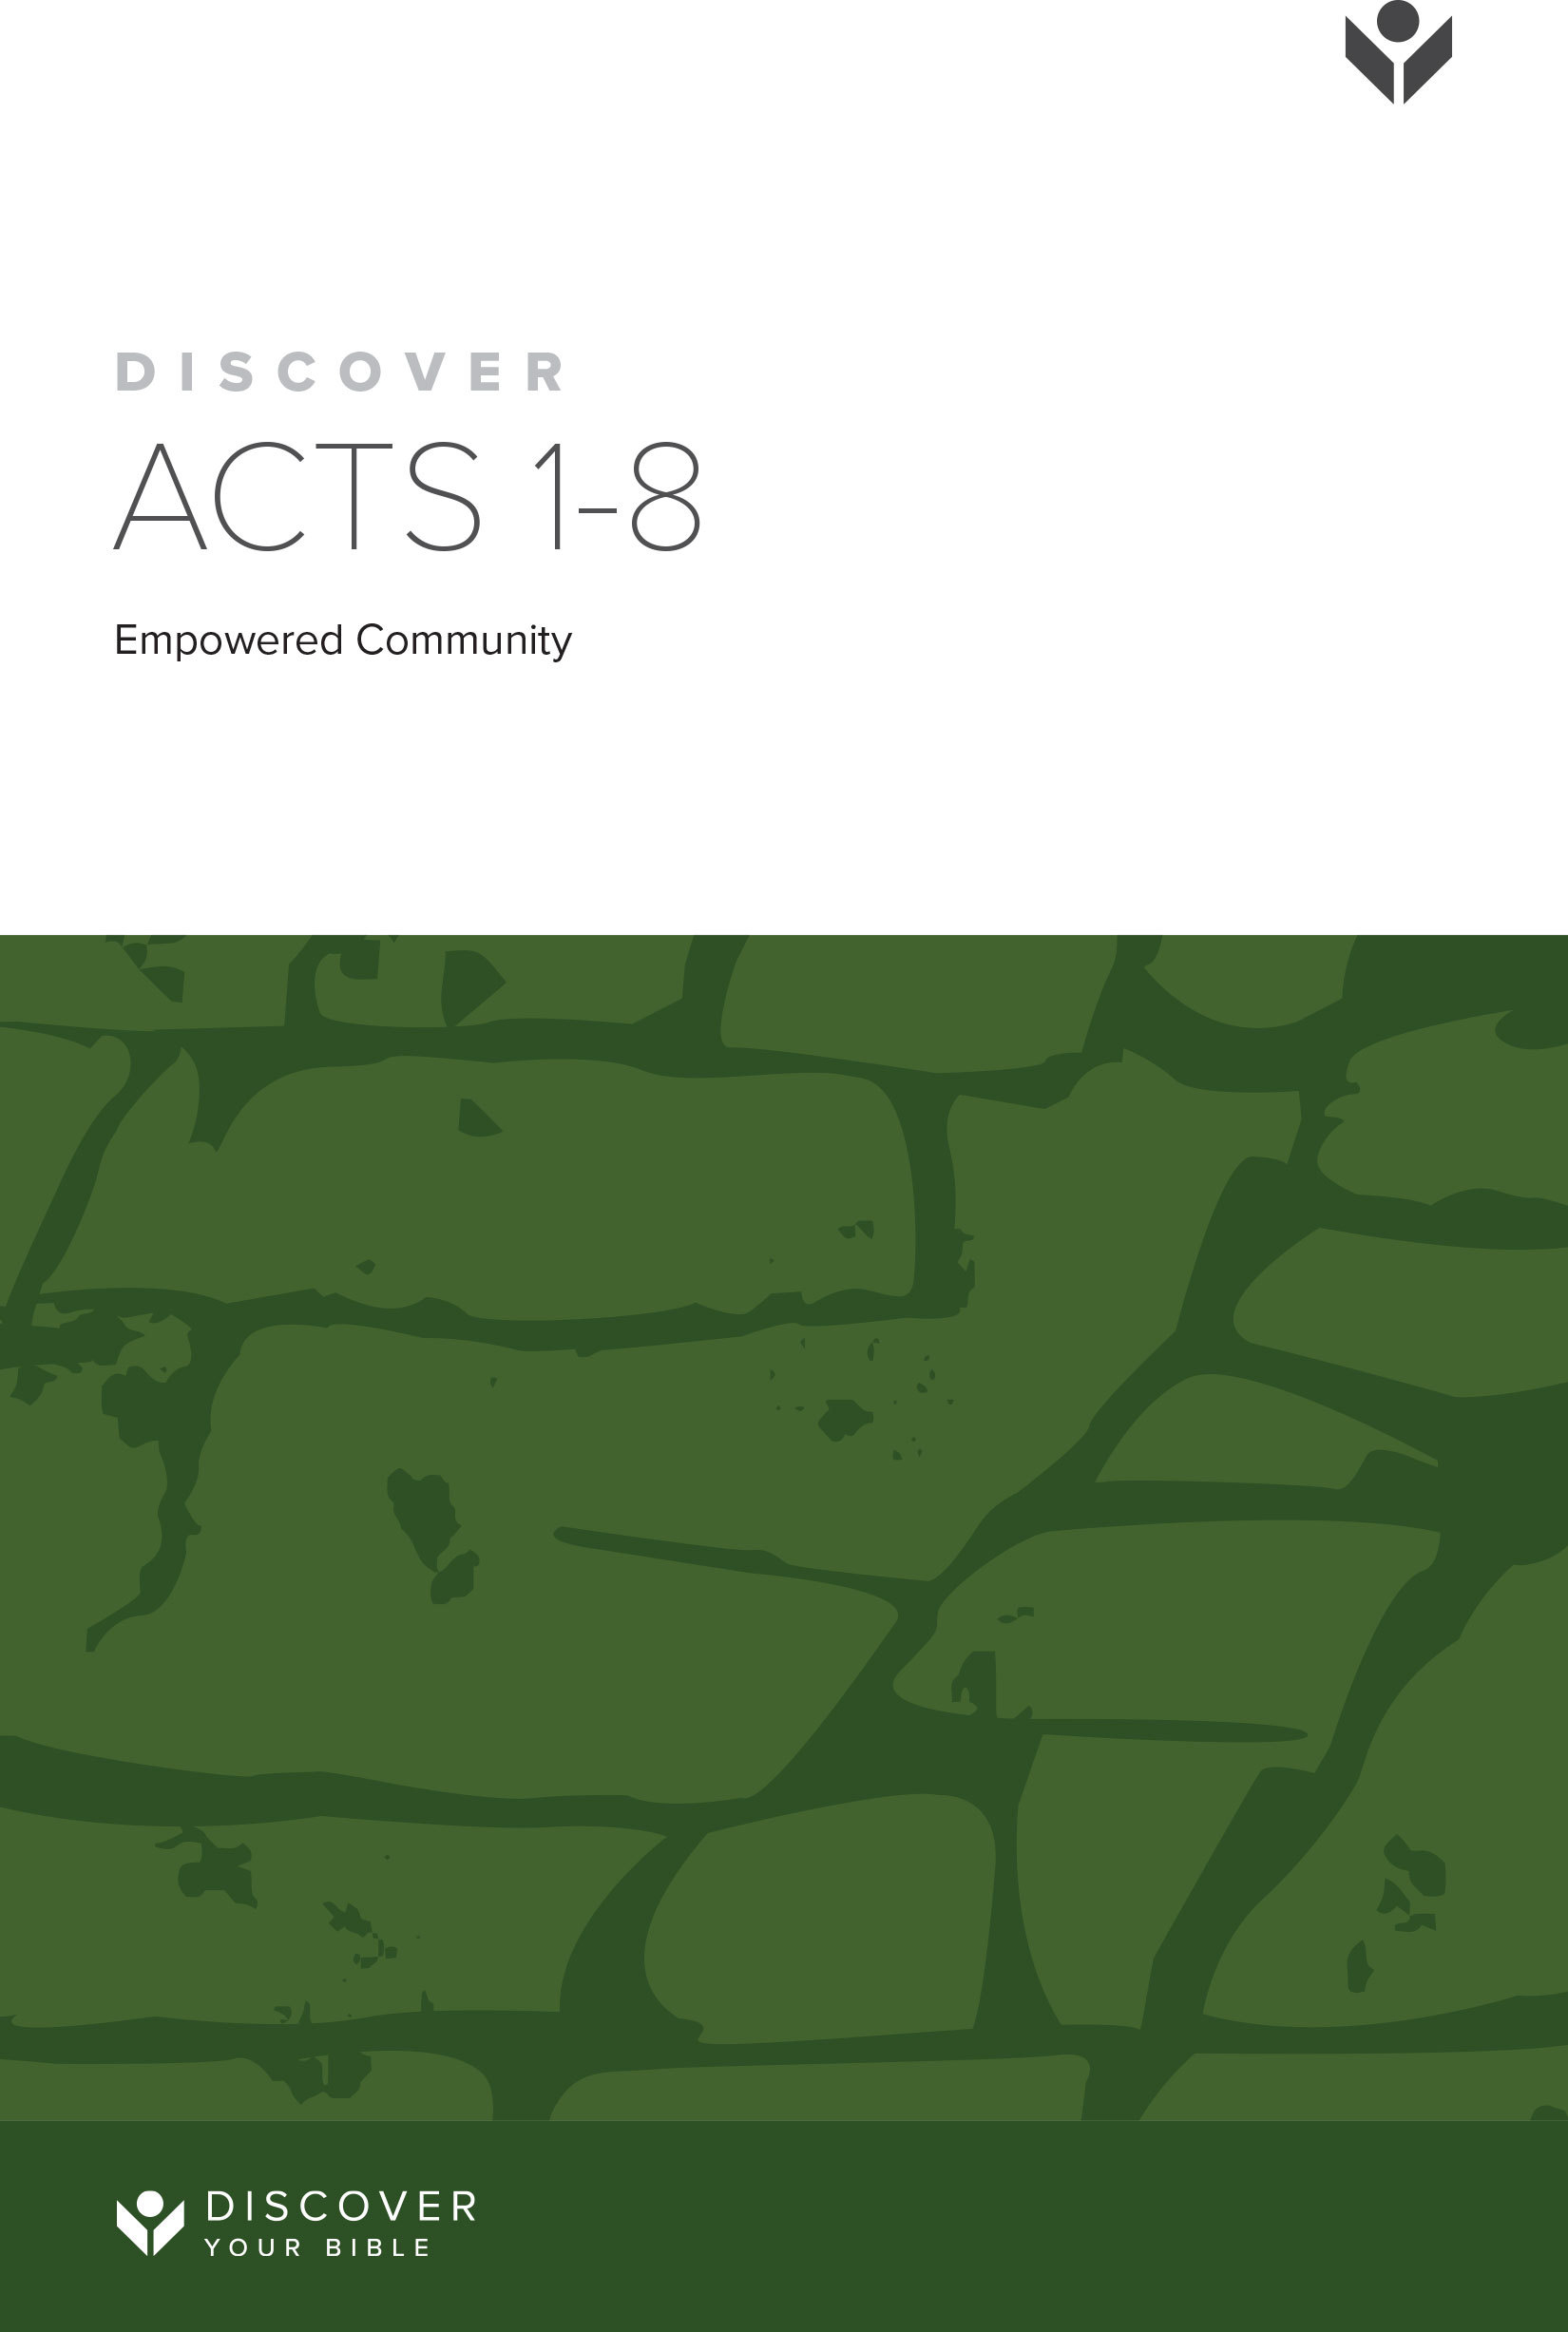 Discover Acts 1-8 Study Guide cover image